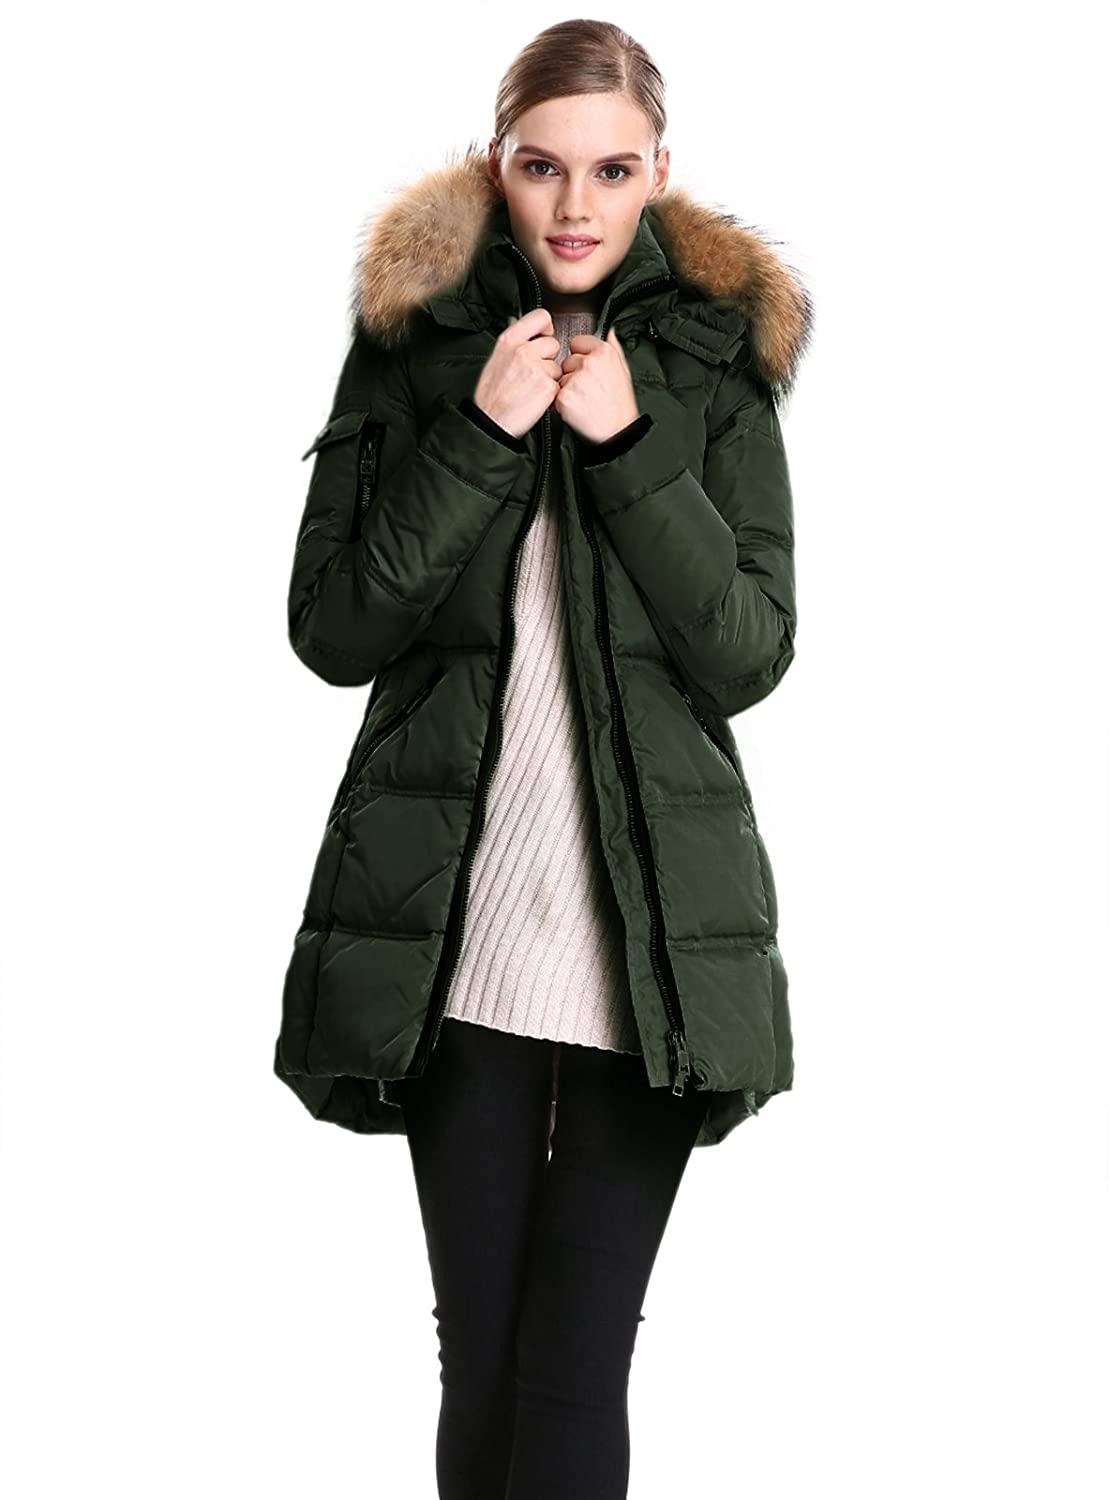 a0dc258c8 Escalier Women's Down Jacket with Real Fur Hooded Winter Parka Coat